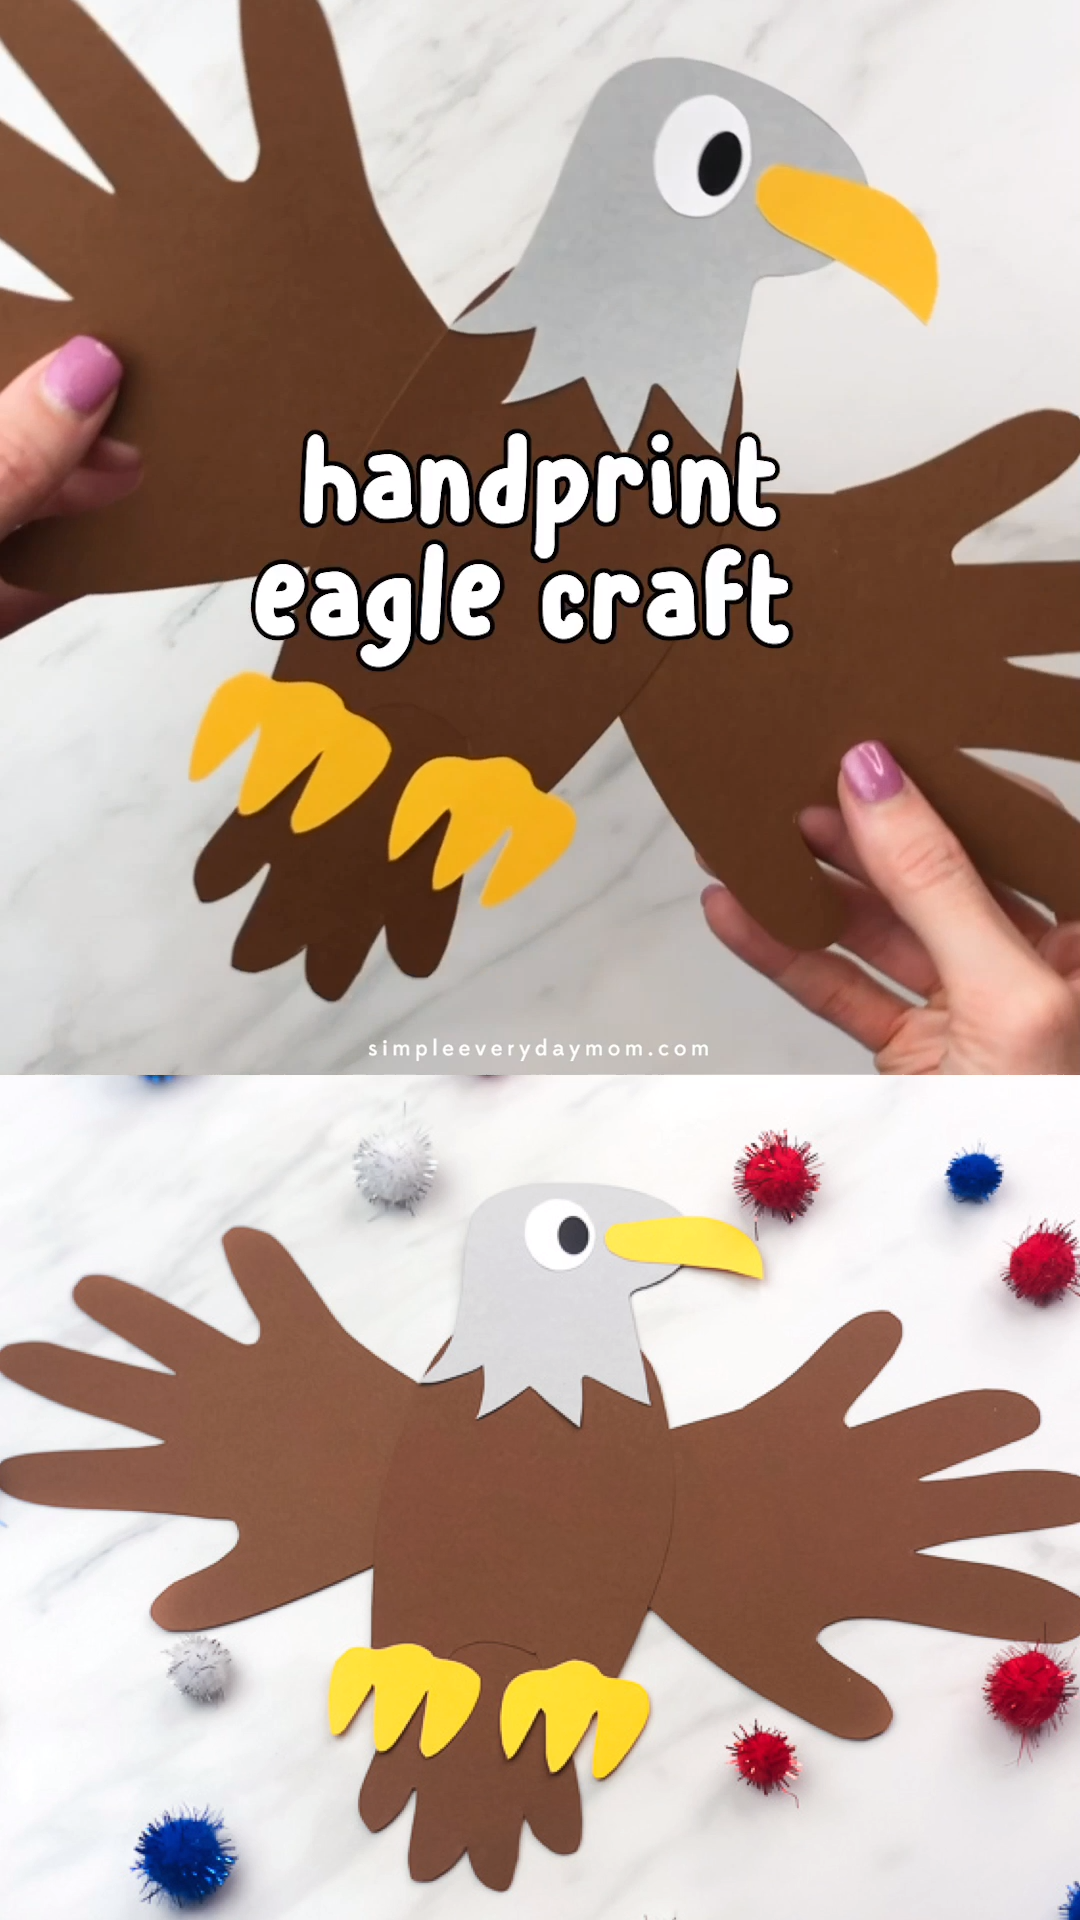 Handprint Eagle Craft For Kids  #presidents